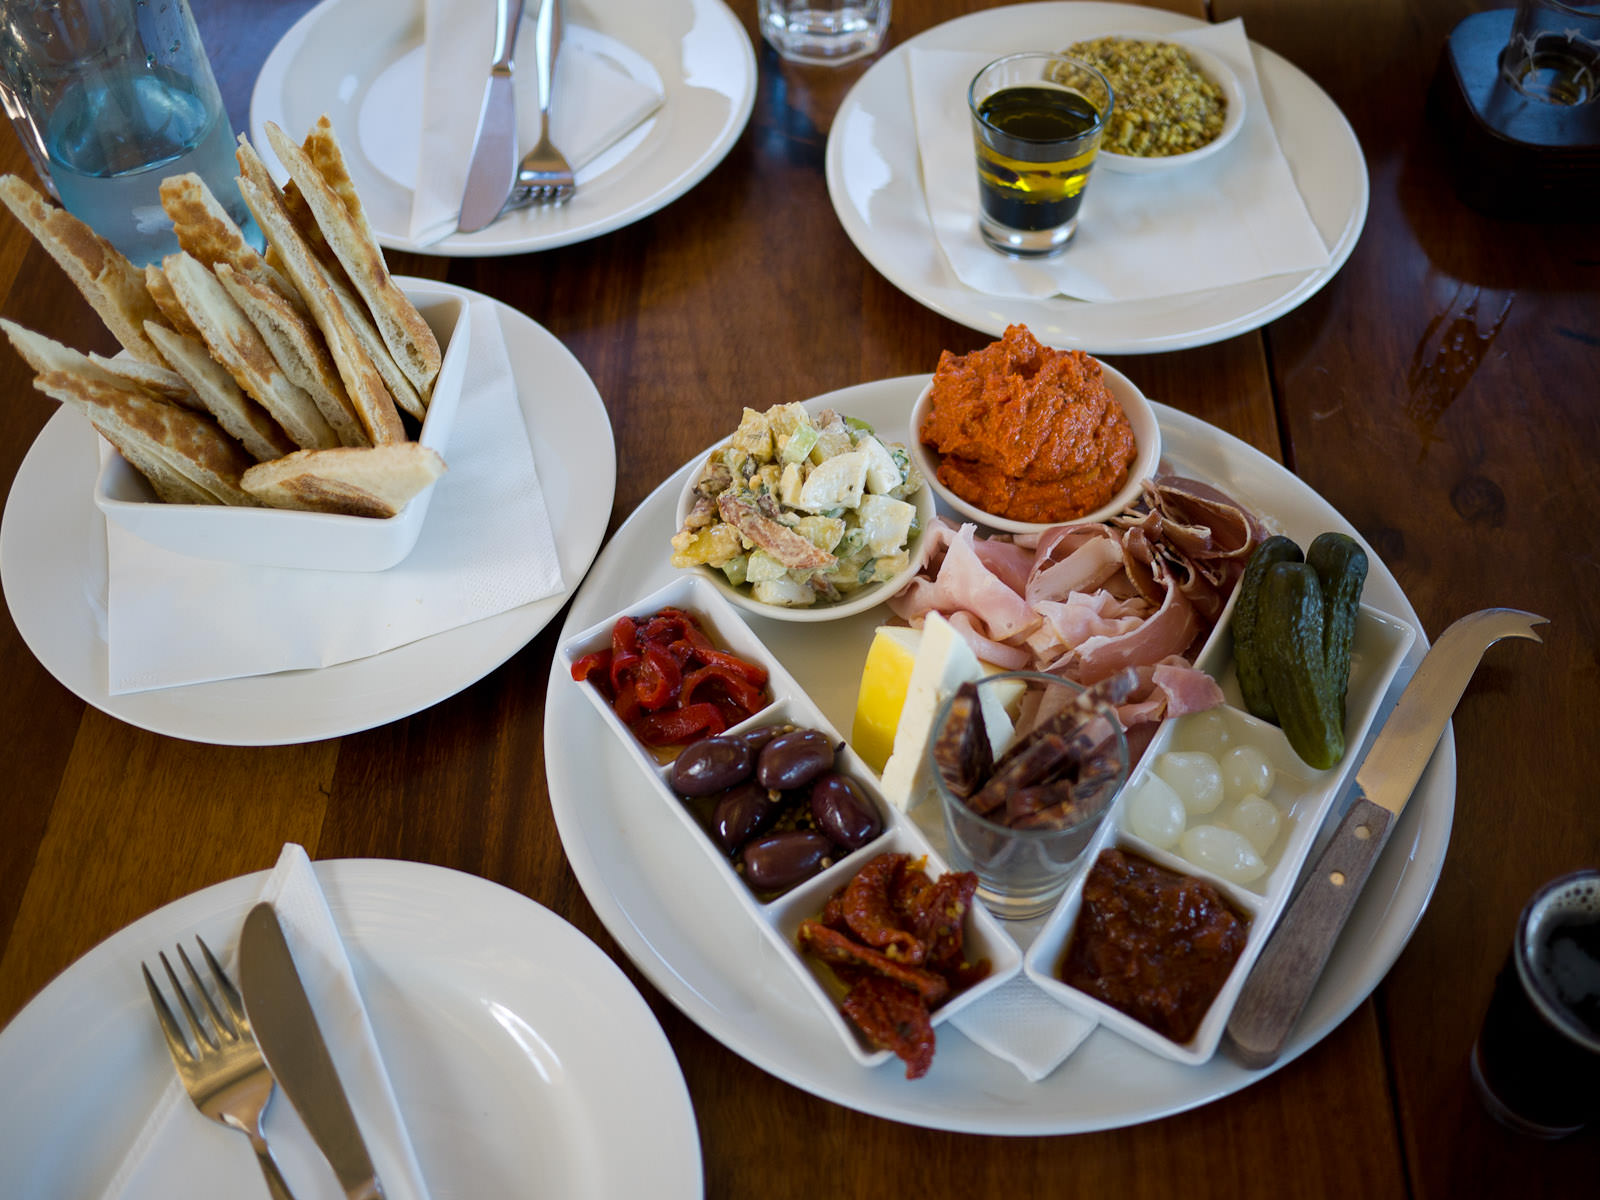 Brewer's choice - selection of cold meats, dips, potato salad and antipasta with pizza wedges (AU$30)